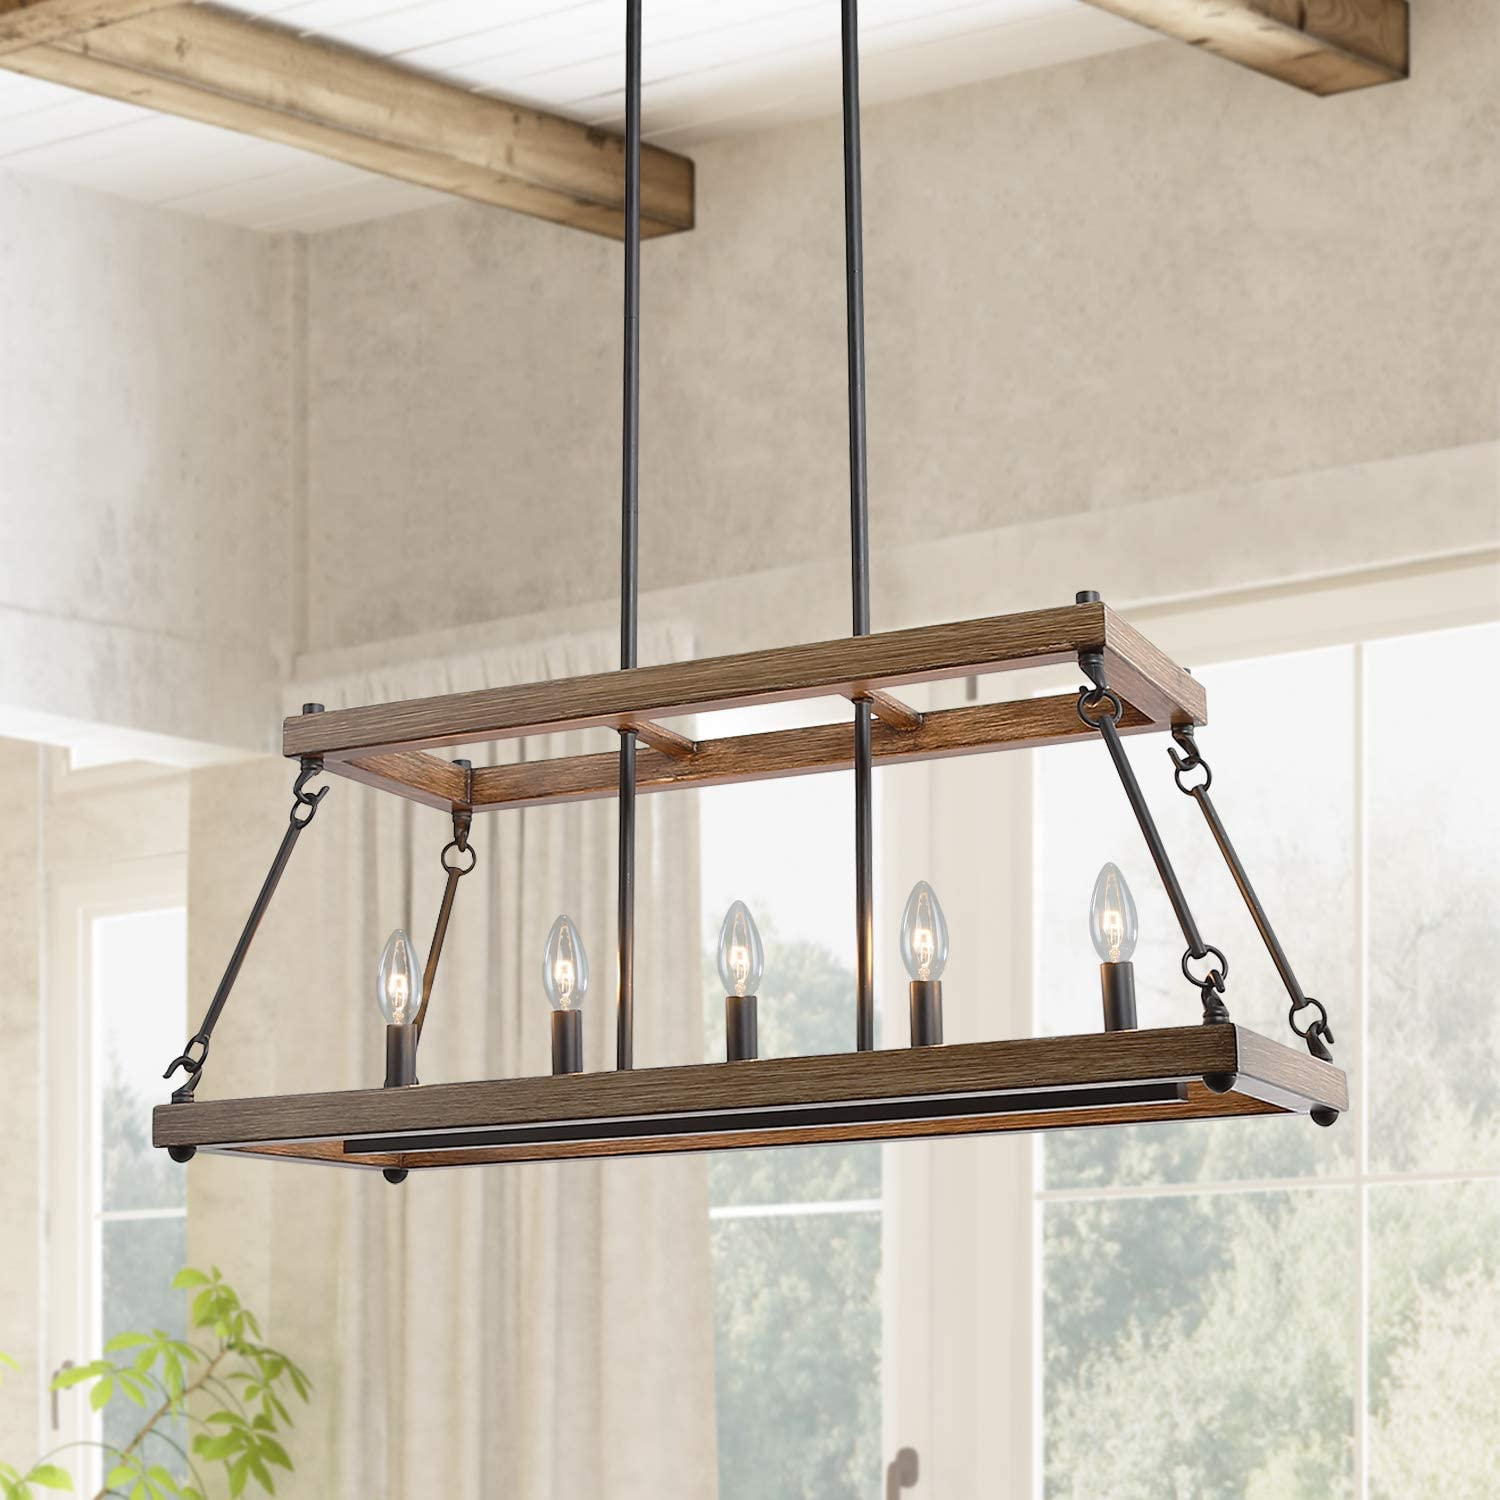 ISURAUL Kitchen Island Lighting Farmhouse Fresno Mall Wood Faux Chand Manufacturer direct delivery Smart